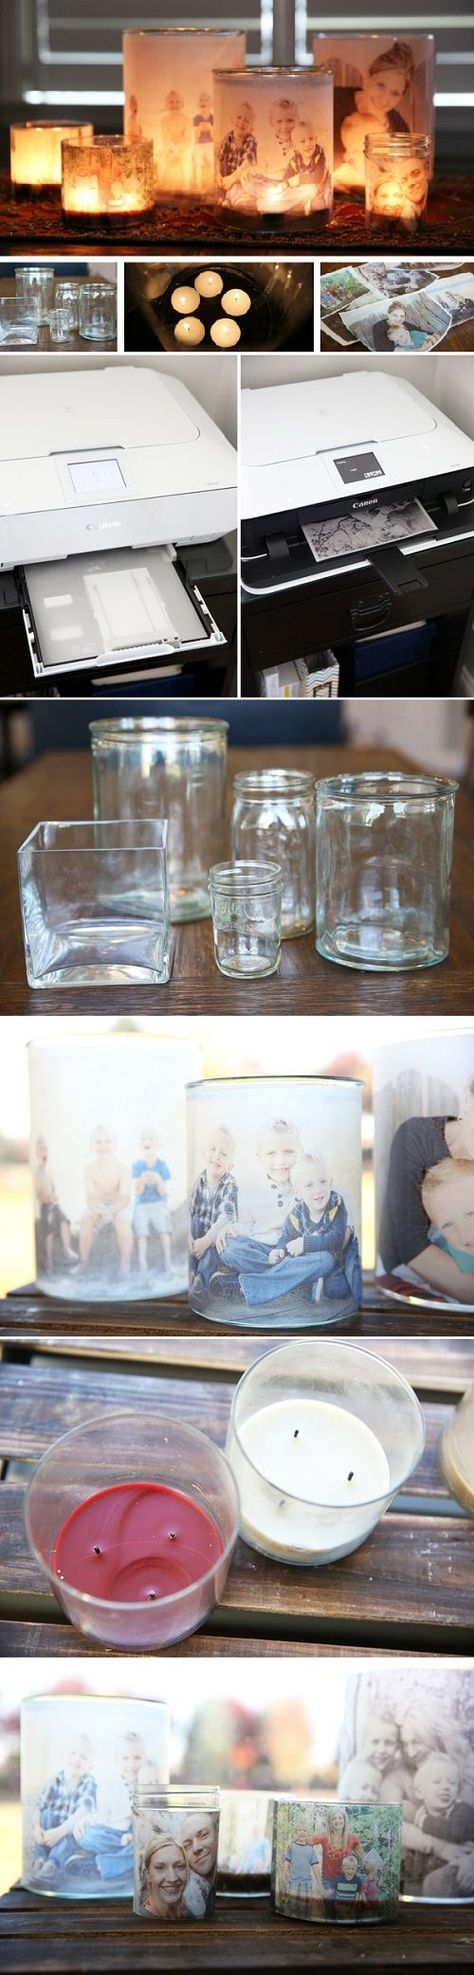 DIY Glowing Photo Luminaries | Infant/Toddler Reggio Inspired Ideas ...